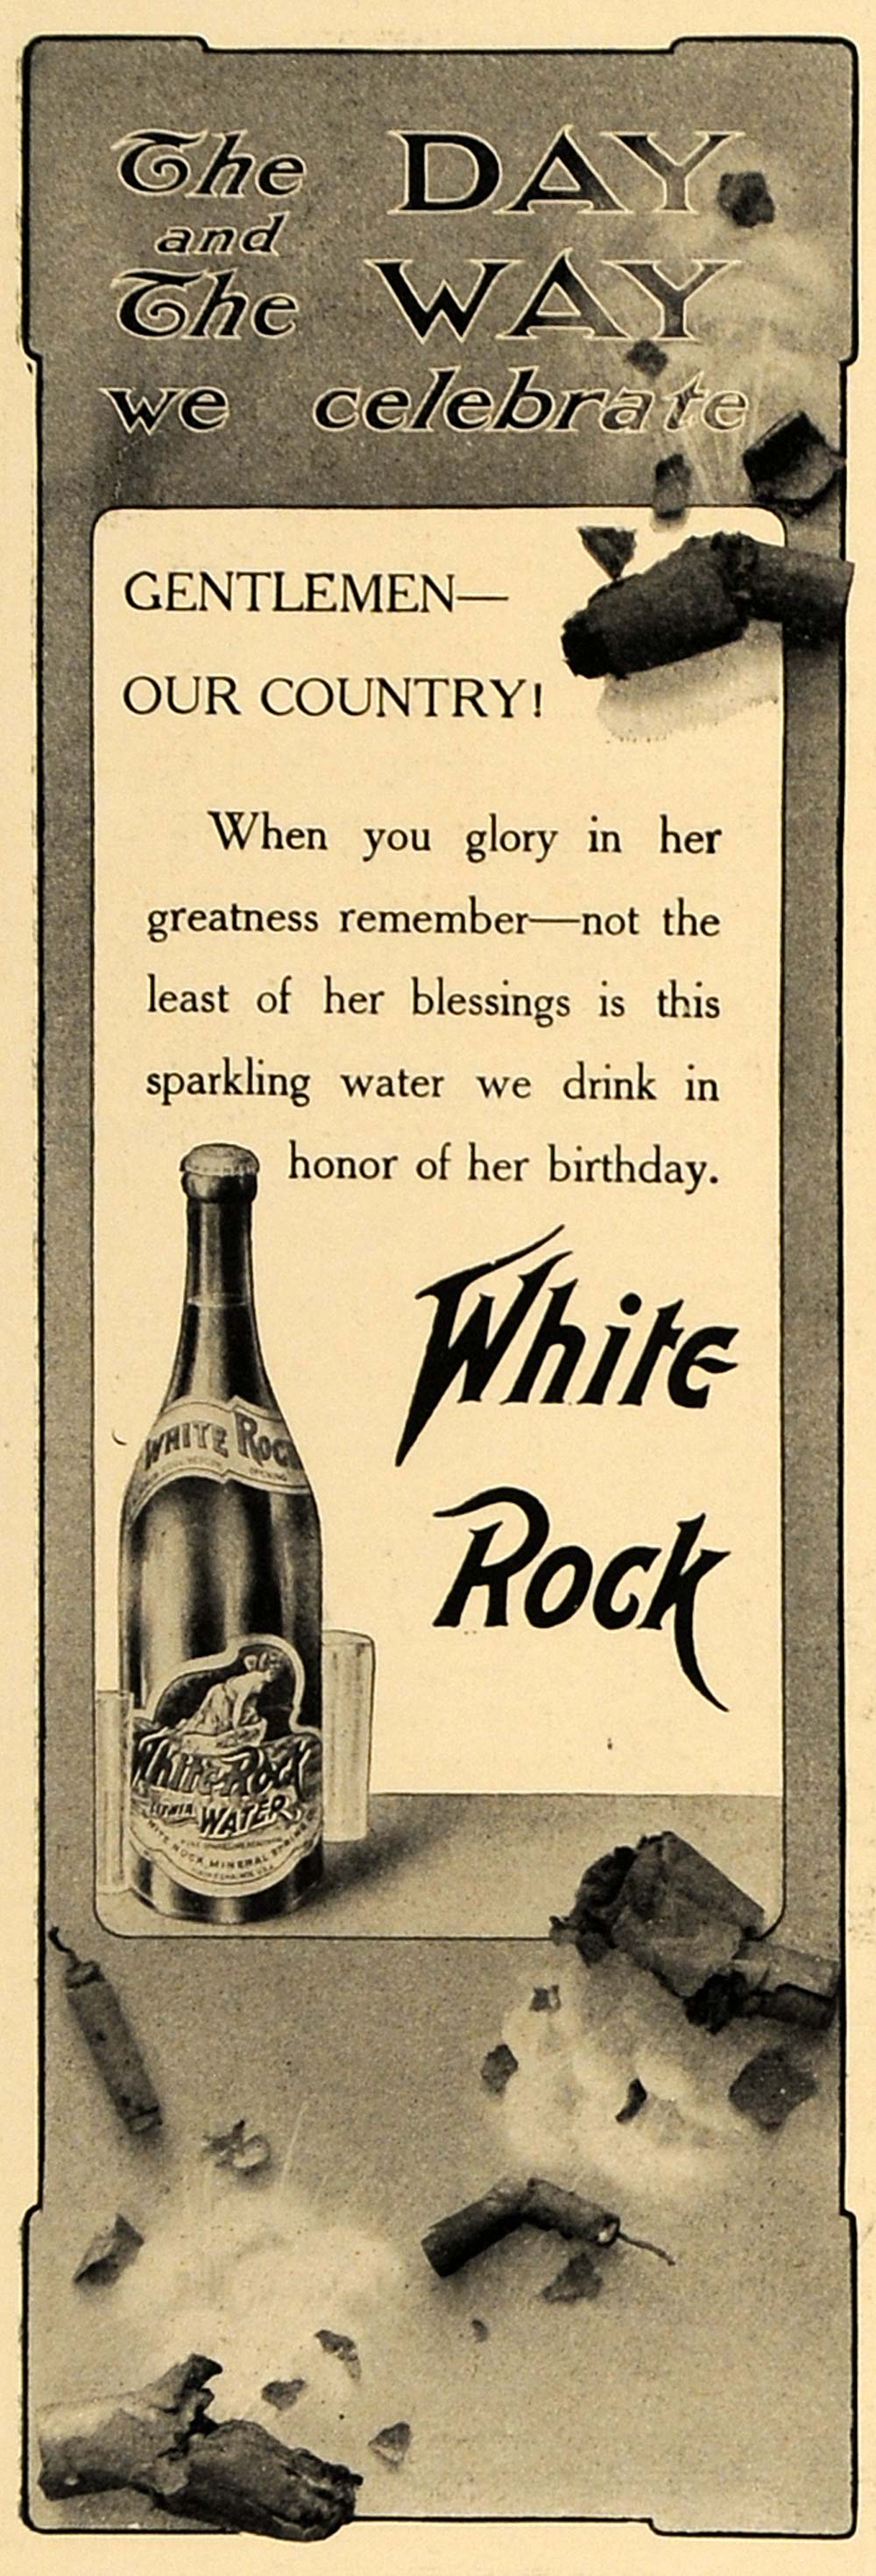 1905 Ad White Rock Sparkling Water Celebrate 4th July - ORIGINAL ADVERTISING CL4